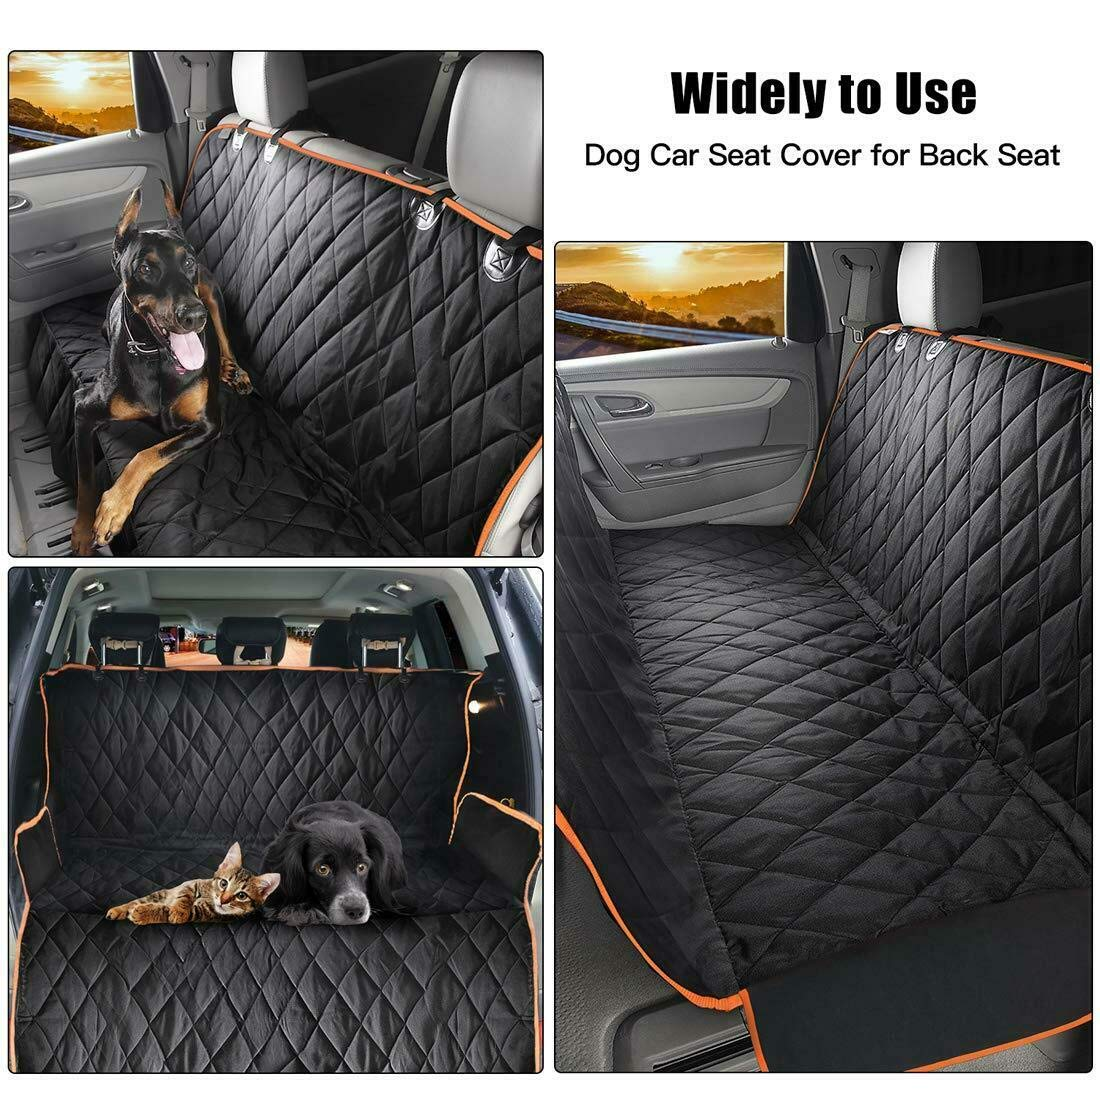 100/% Waterproof Pet Seat Covers for Back Sea Dog Car Seat Cover with Side Flaps